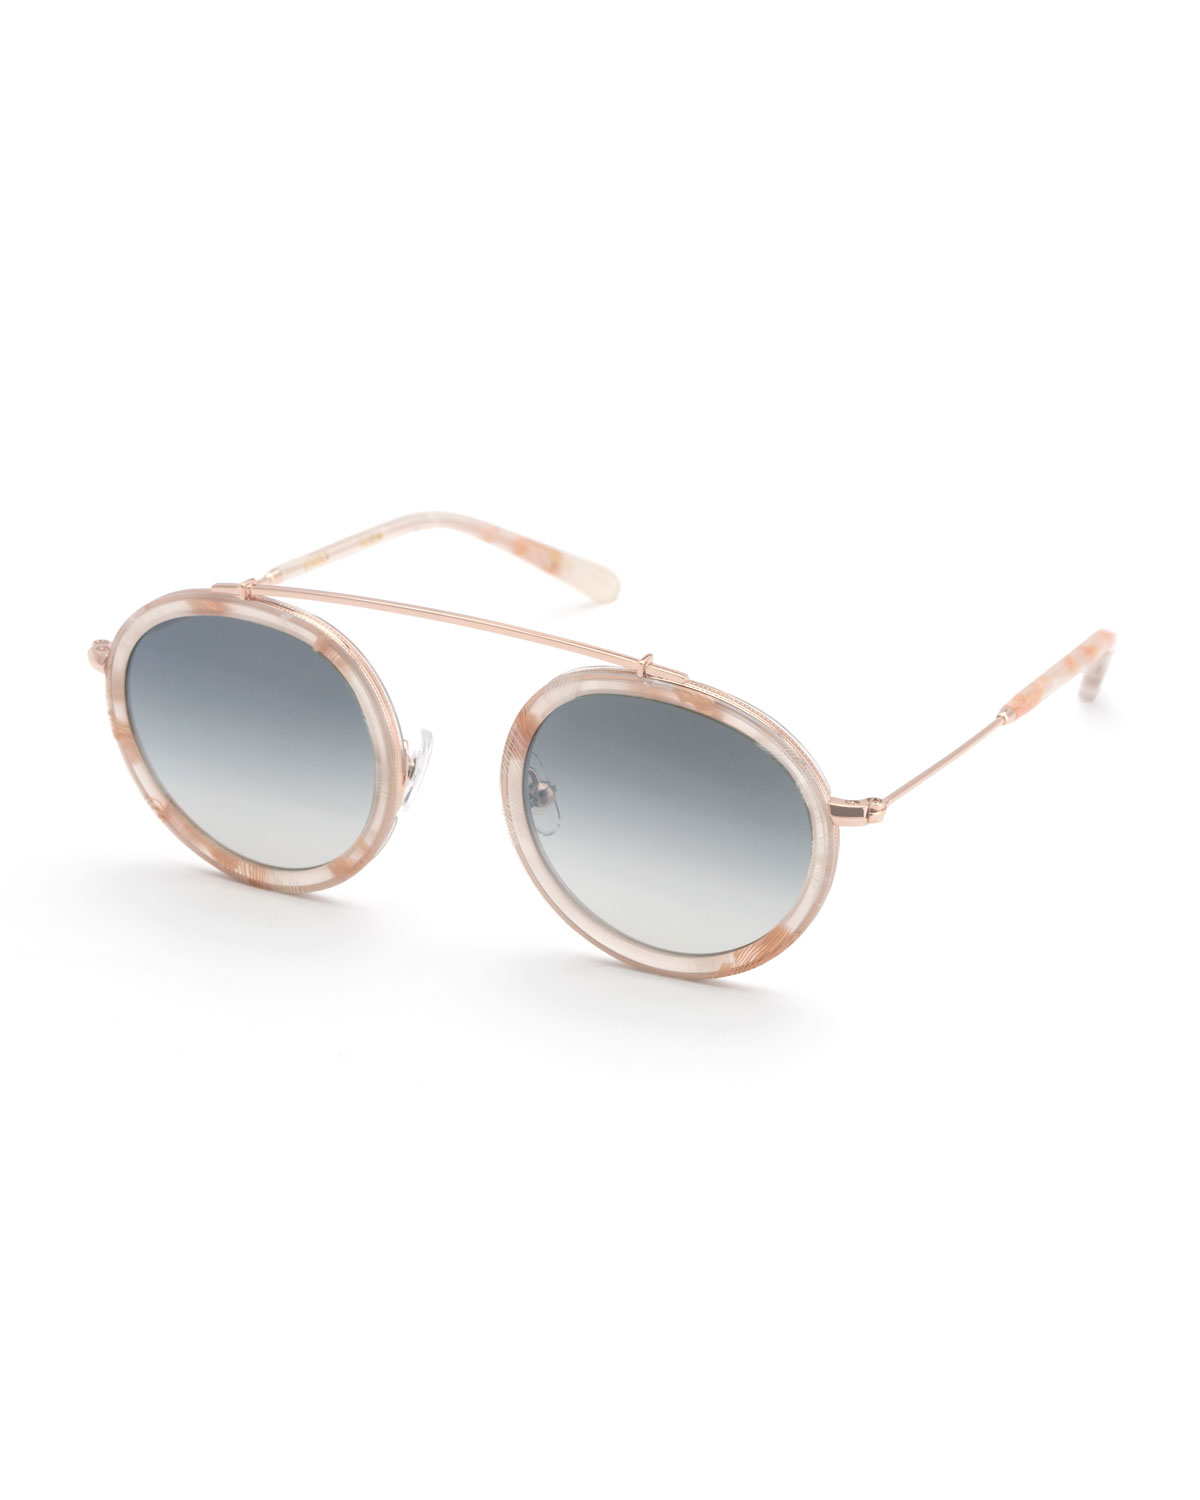 KREWE Conti Women'S Mirrored Brow Bar Round Sunglasses, 46Mm in Azalea Rose Gold